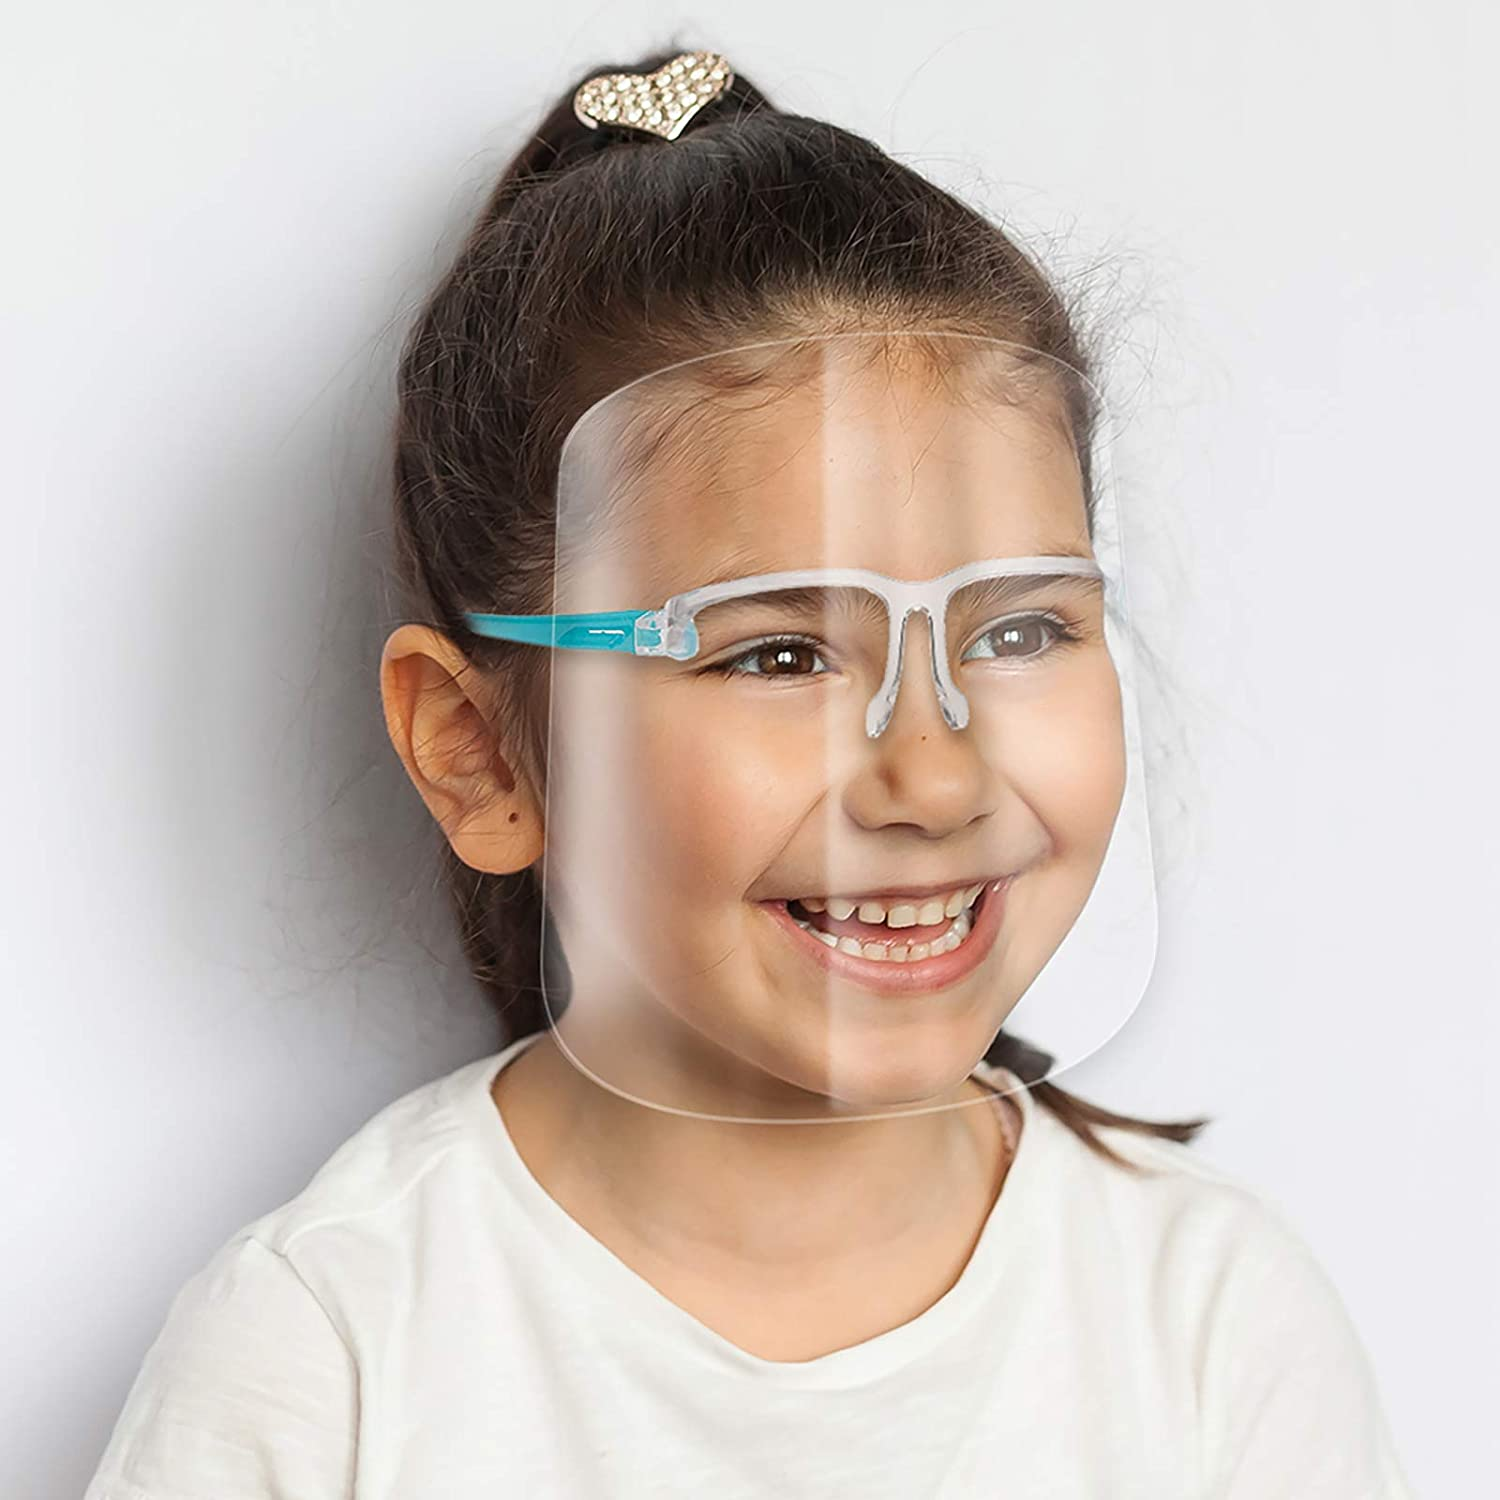 ArtToFrames Protective Kids Face Shield 2 Pack, Fully Transparent Face and Eye Protection from Droplets and Saliva with ReusableBlue Glasses and Replaceable Shield, Anti-Fog PPE